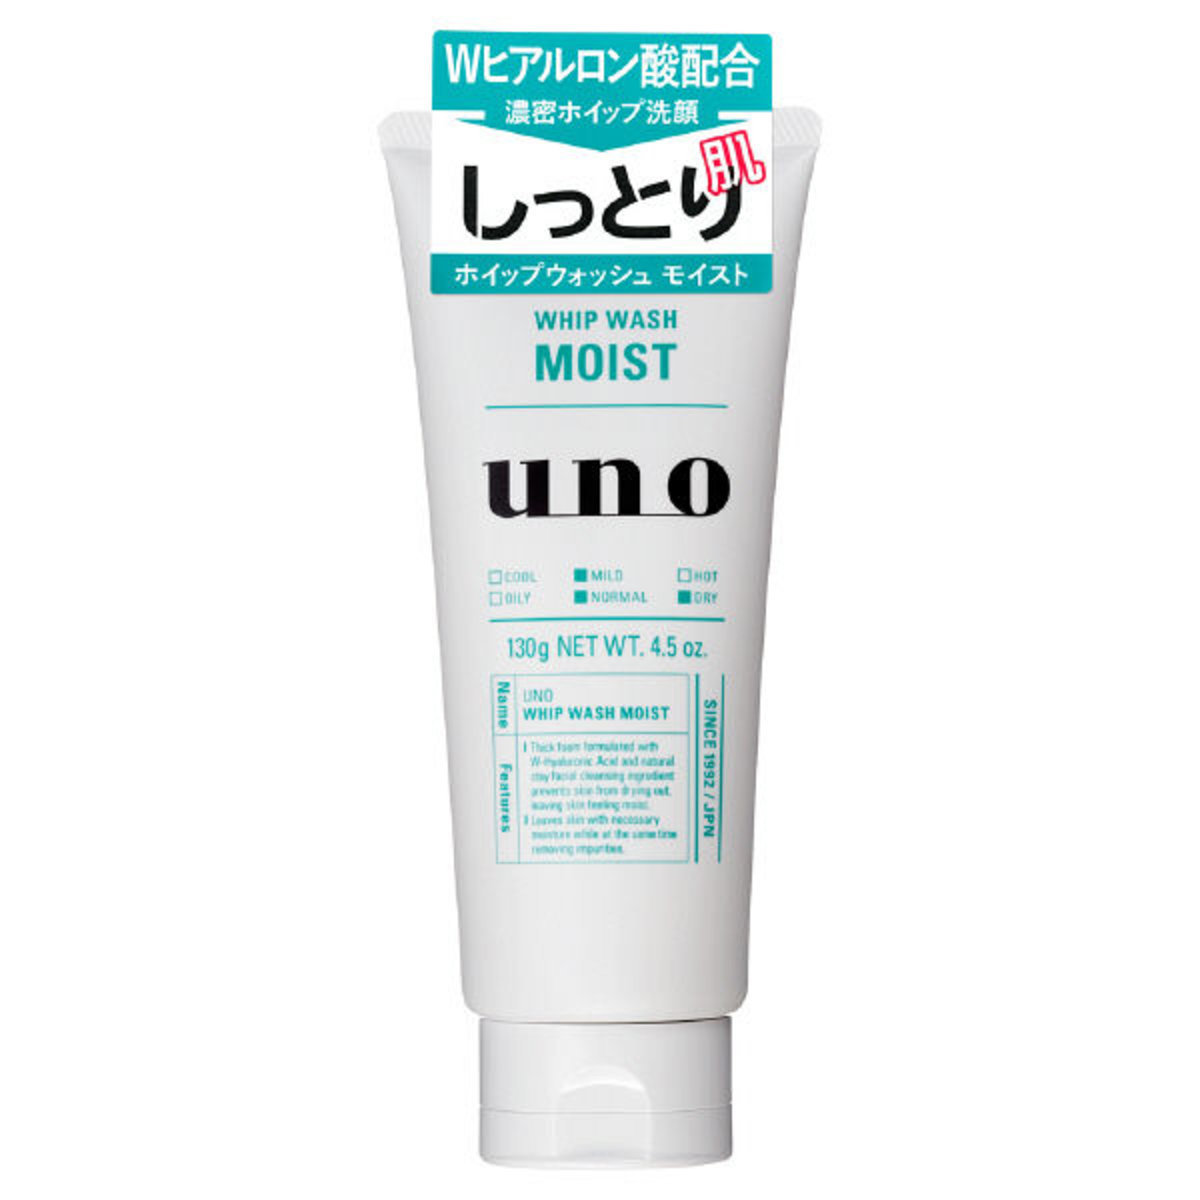 UNO Men's Whip Wash Moist 130g (Green)    [Parallel Import Product]